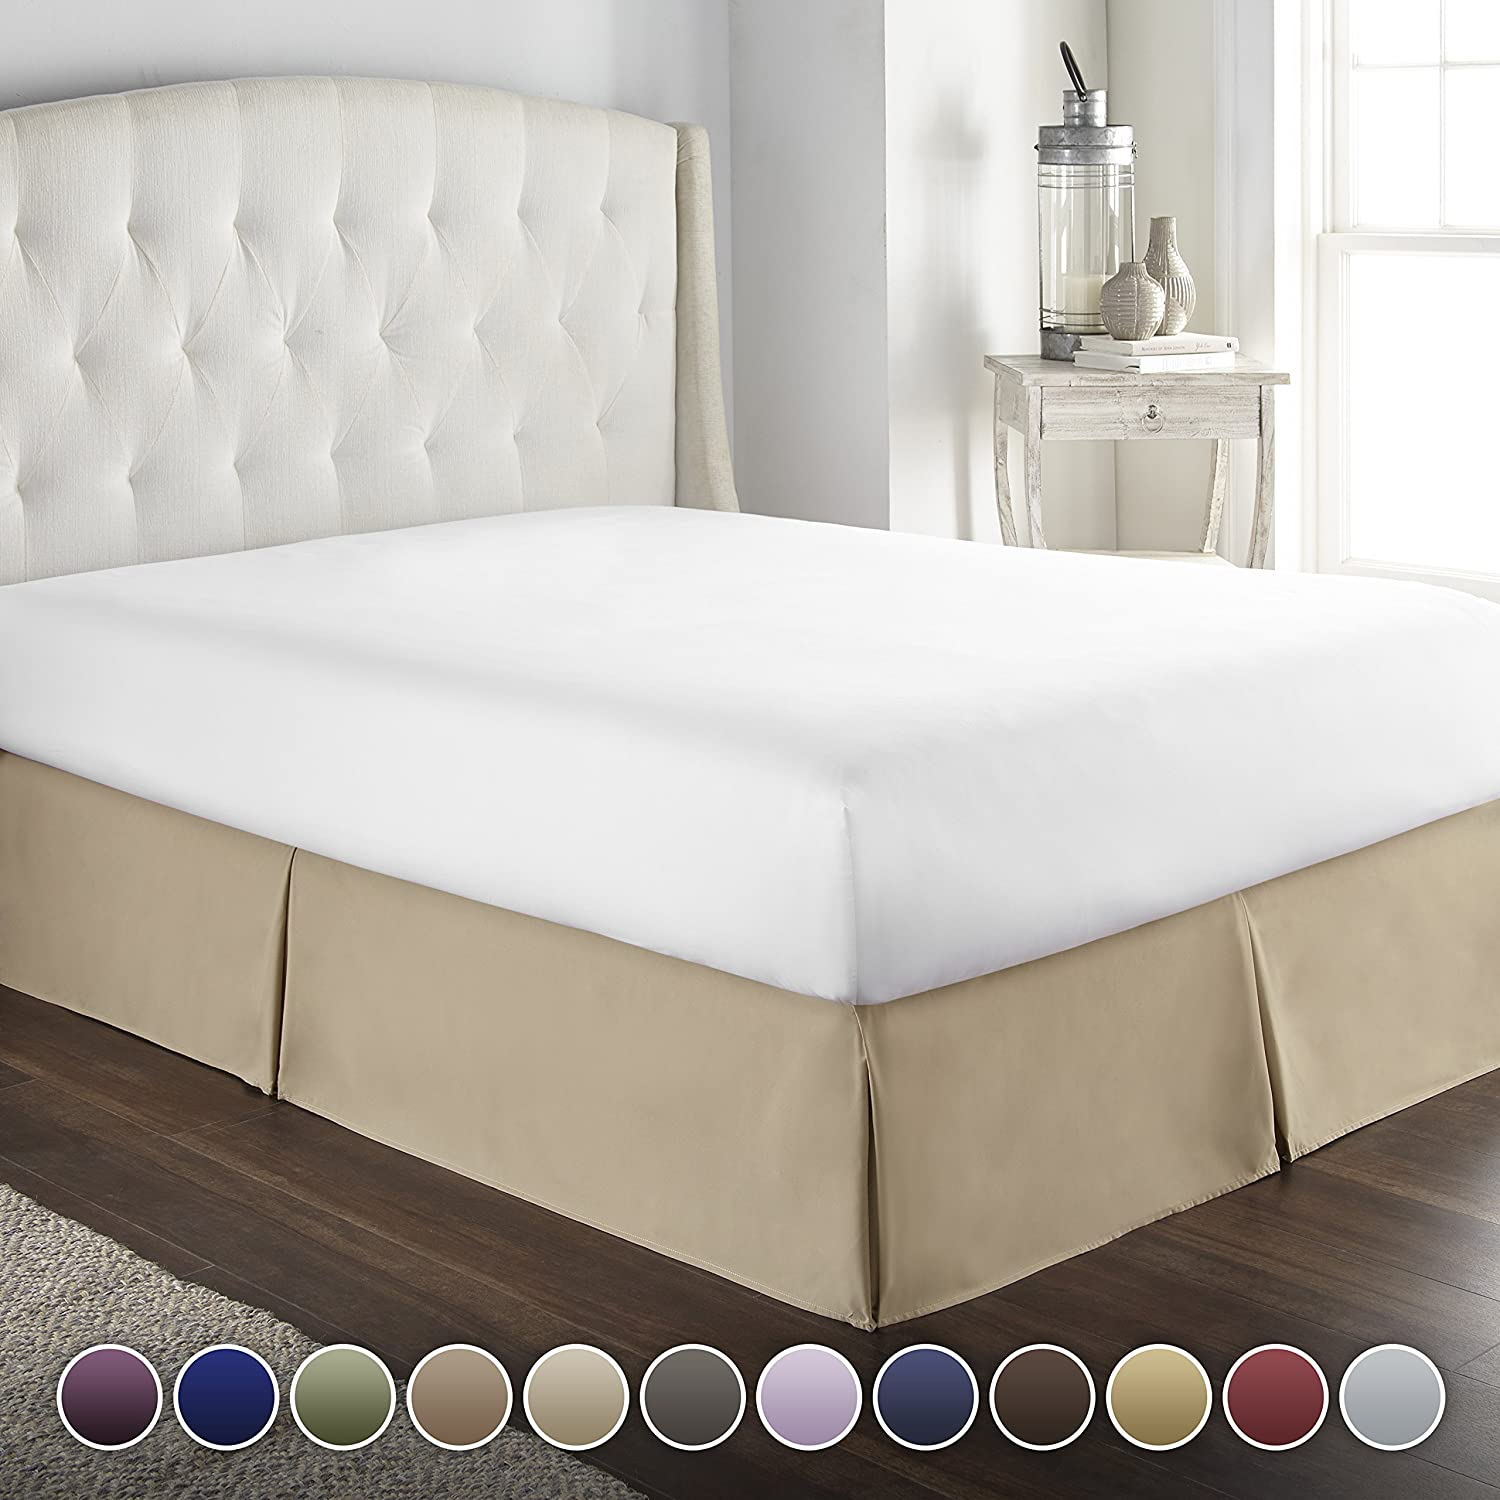 Hotel Luxury Bed Skirt/Dust Ruffle 1800 Platinum Collection-14 inch Tailored Drop, Wrinkle & Fade Resistant, Linens (Full, Taupe)